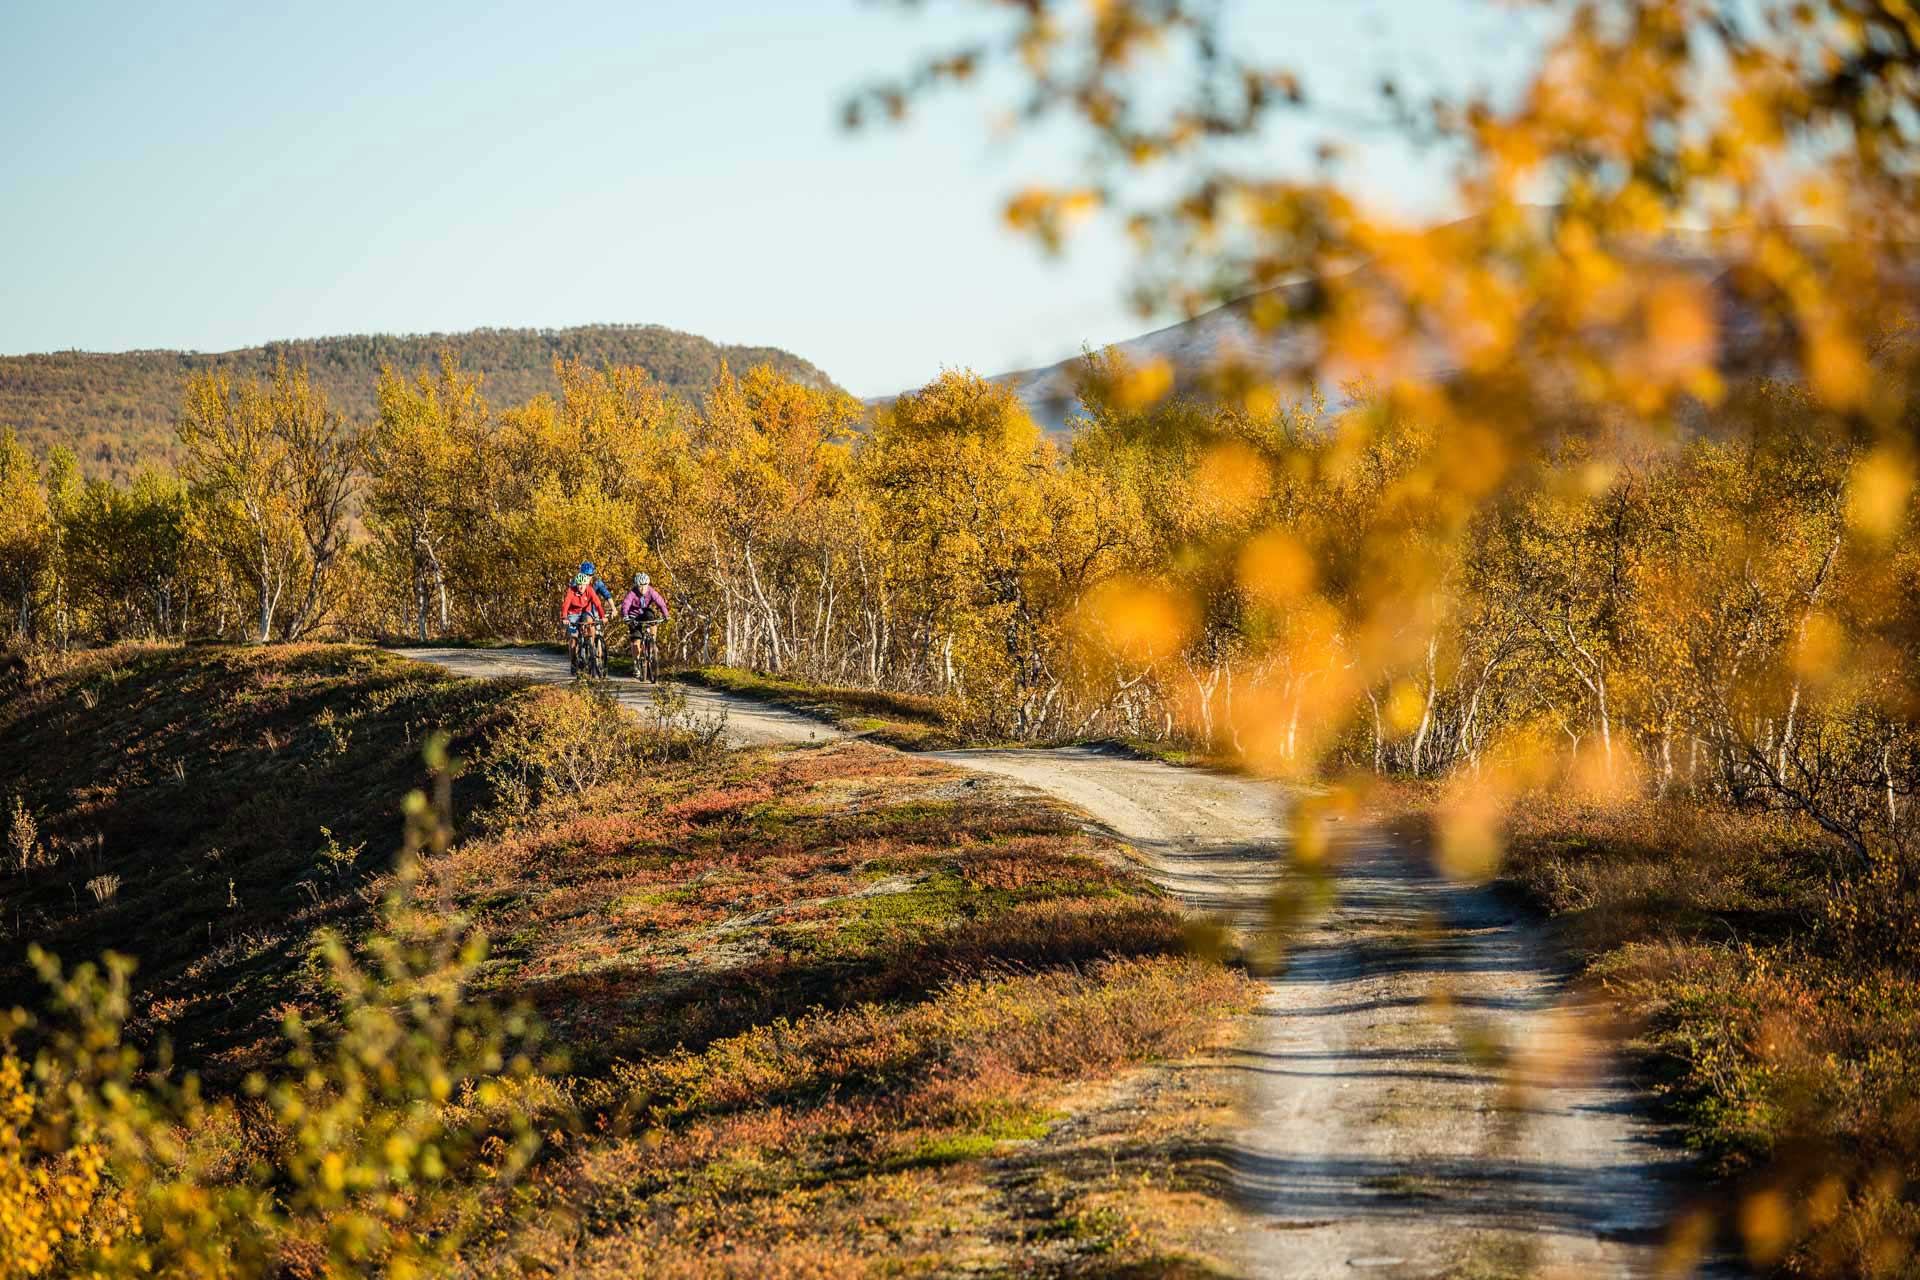 Biking in Funäsfjällen | Photo: Anette Andersson